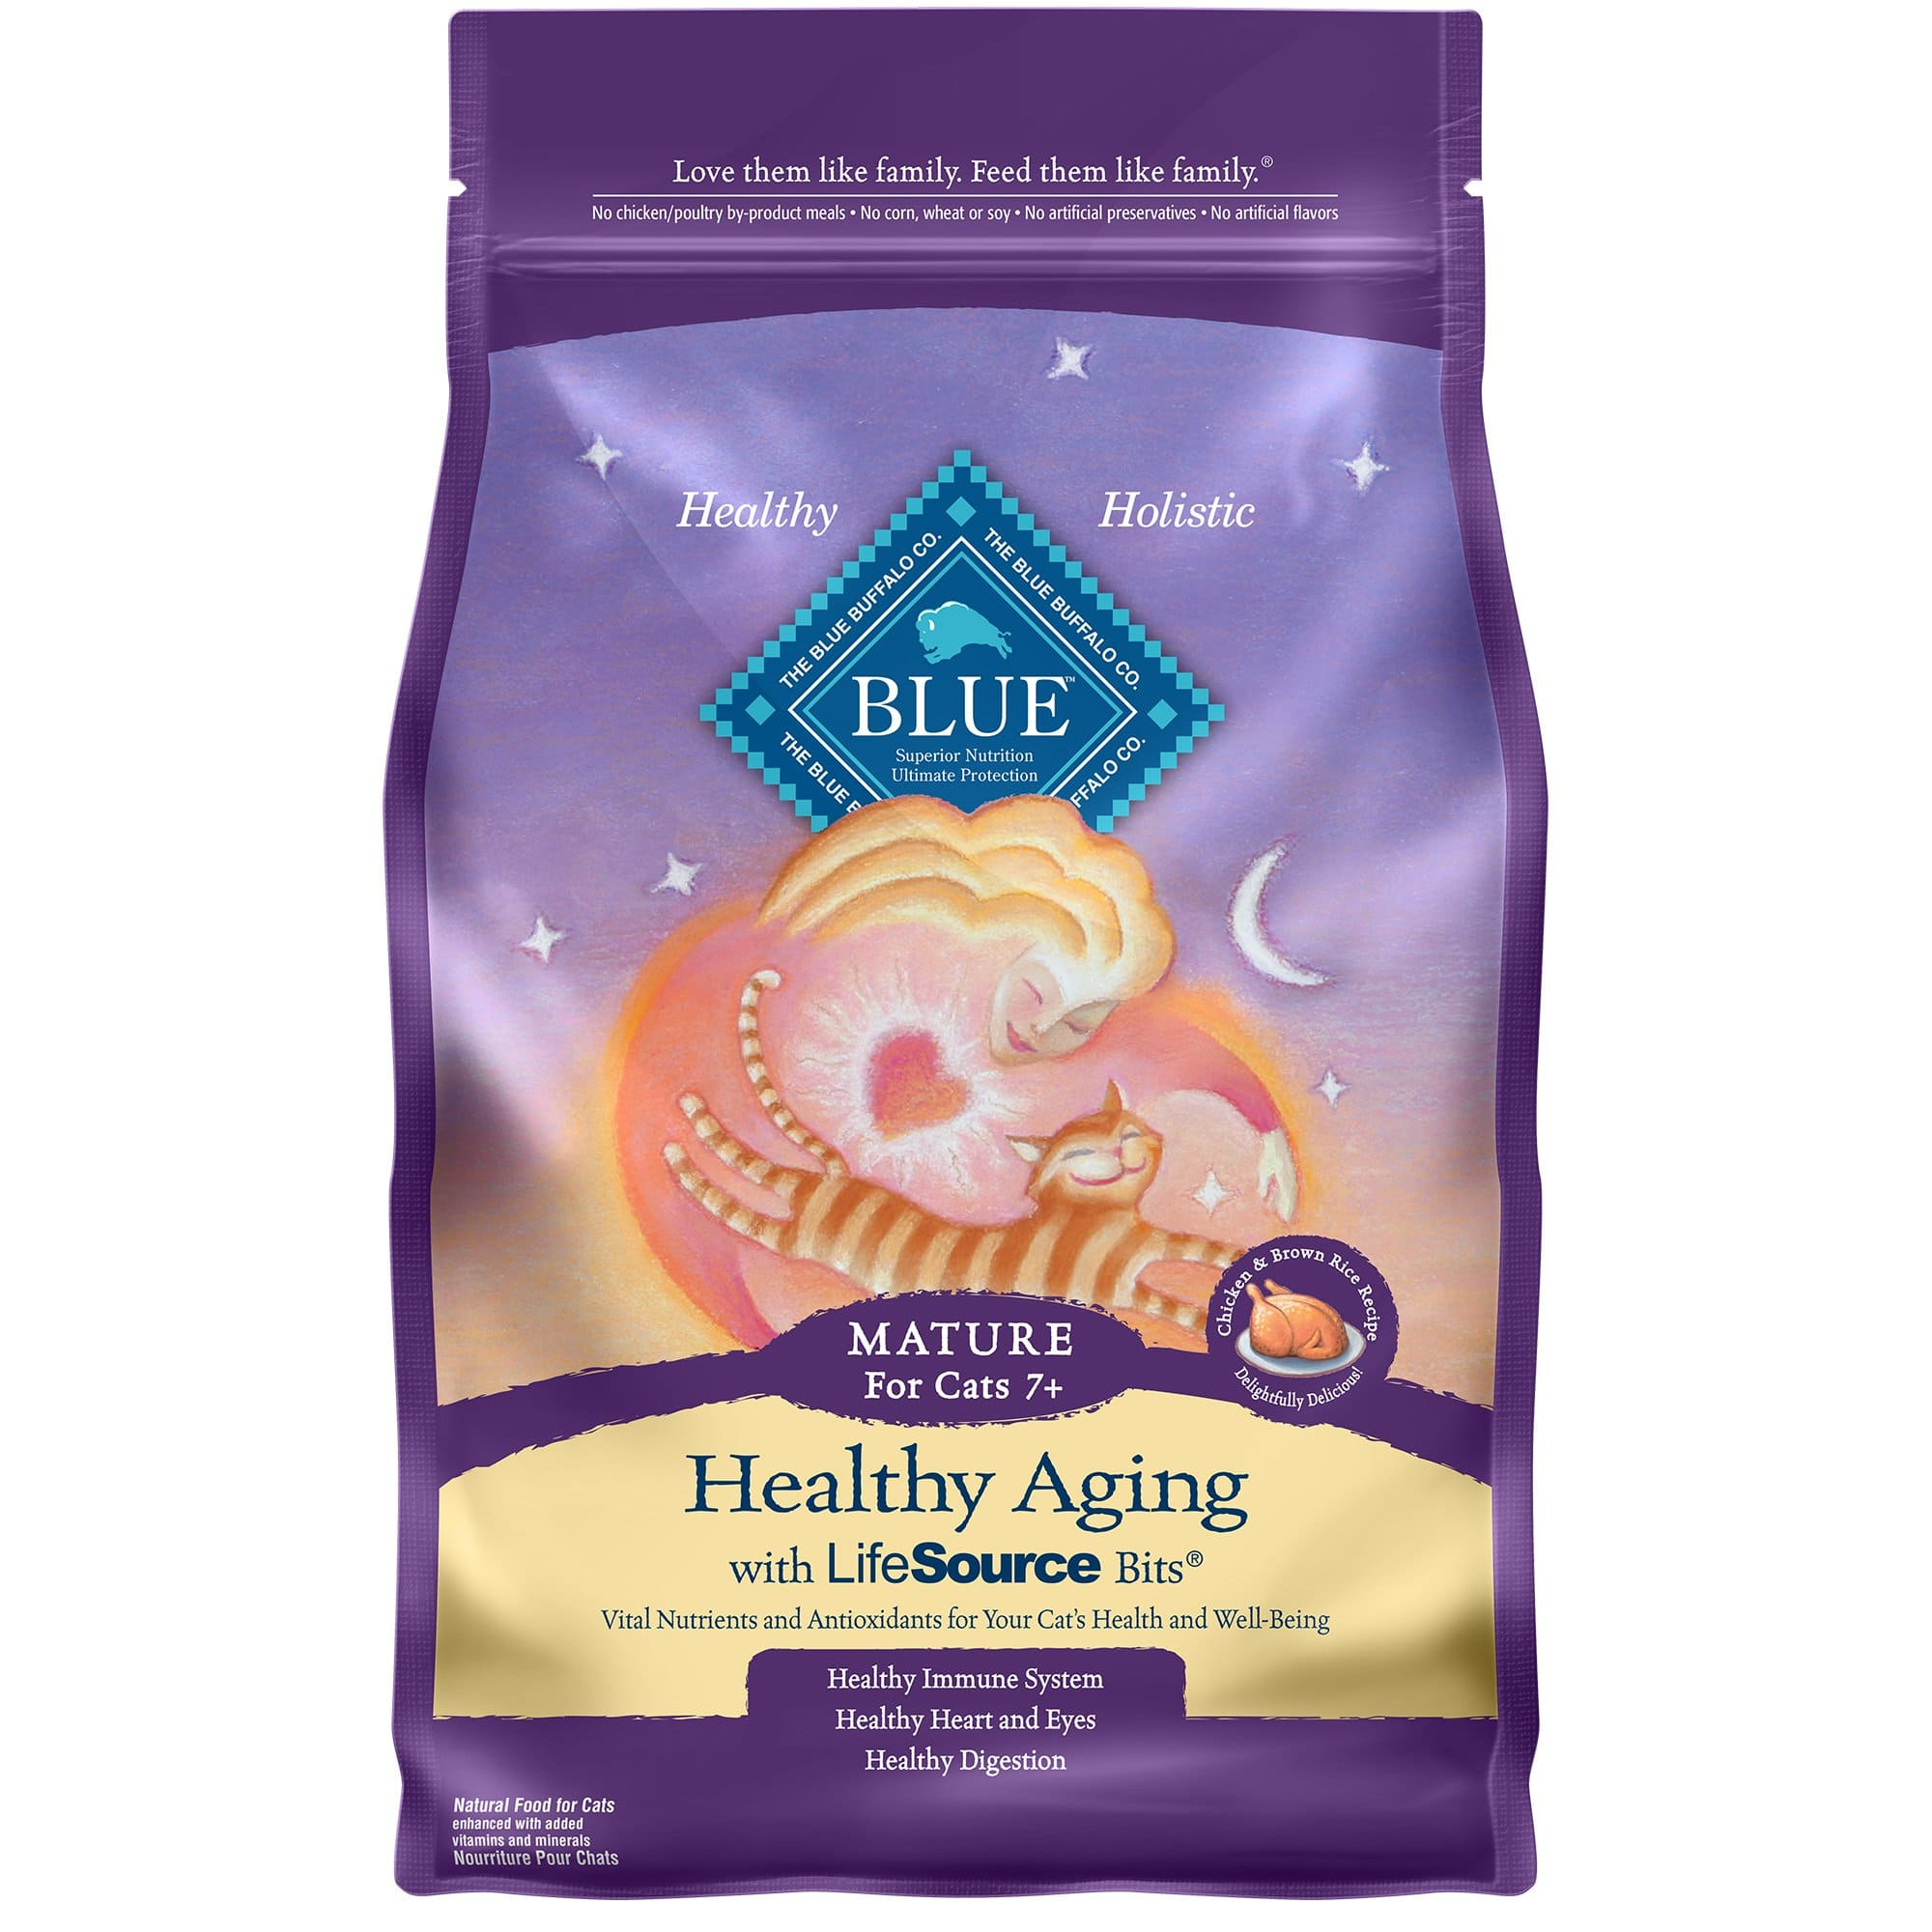 7-Lbs Blue Buffalo Healthy Aging Chicken & Brown Rice Recipe Mature Dry Cat Food $11.65 + Free Store Pickup at Petco